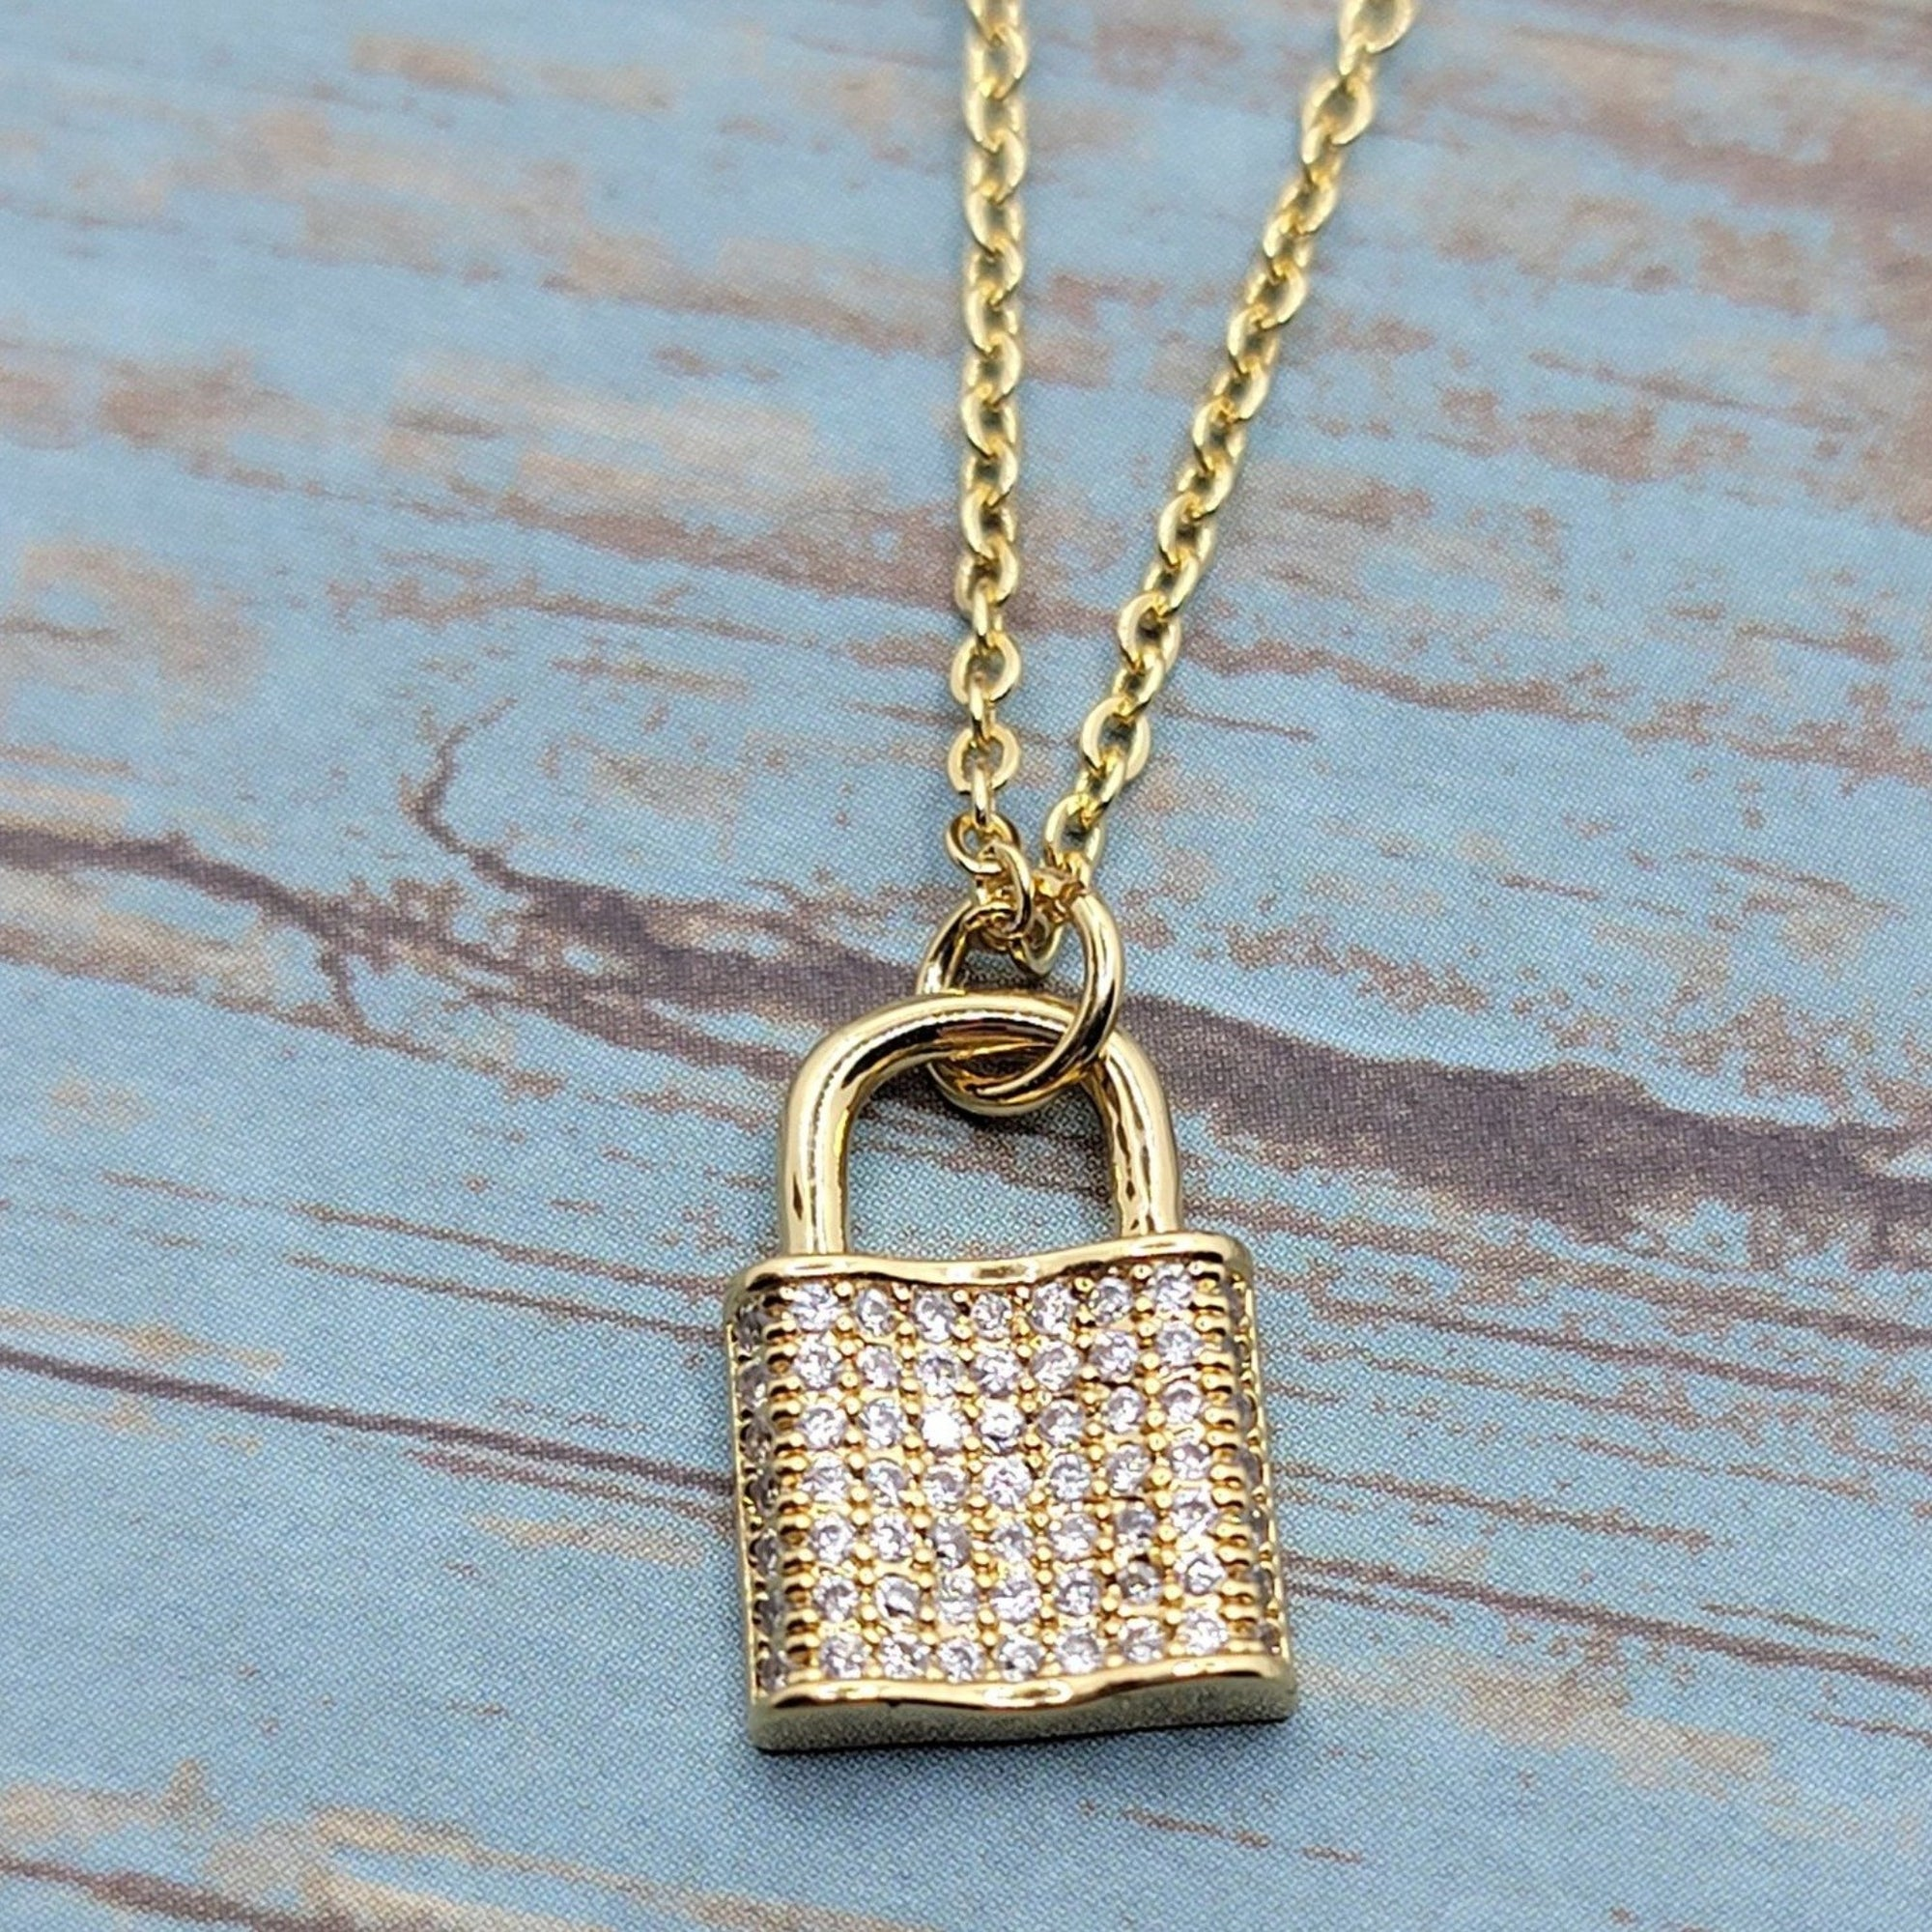 Gold Cubic Zirconia Pave Lock Necklace